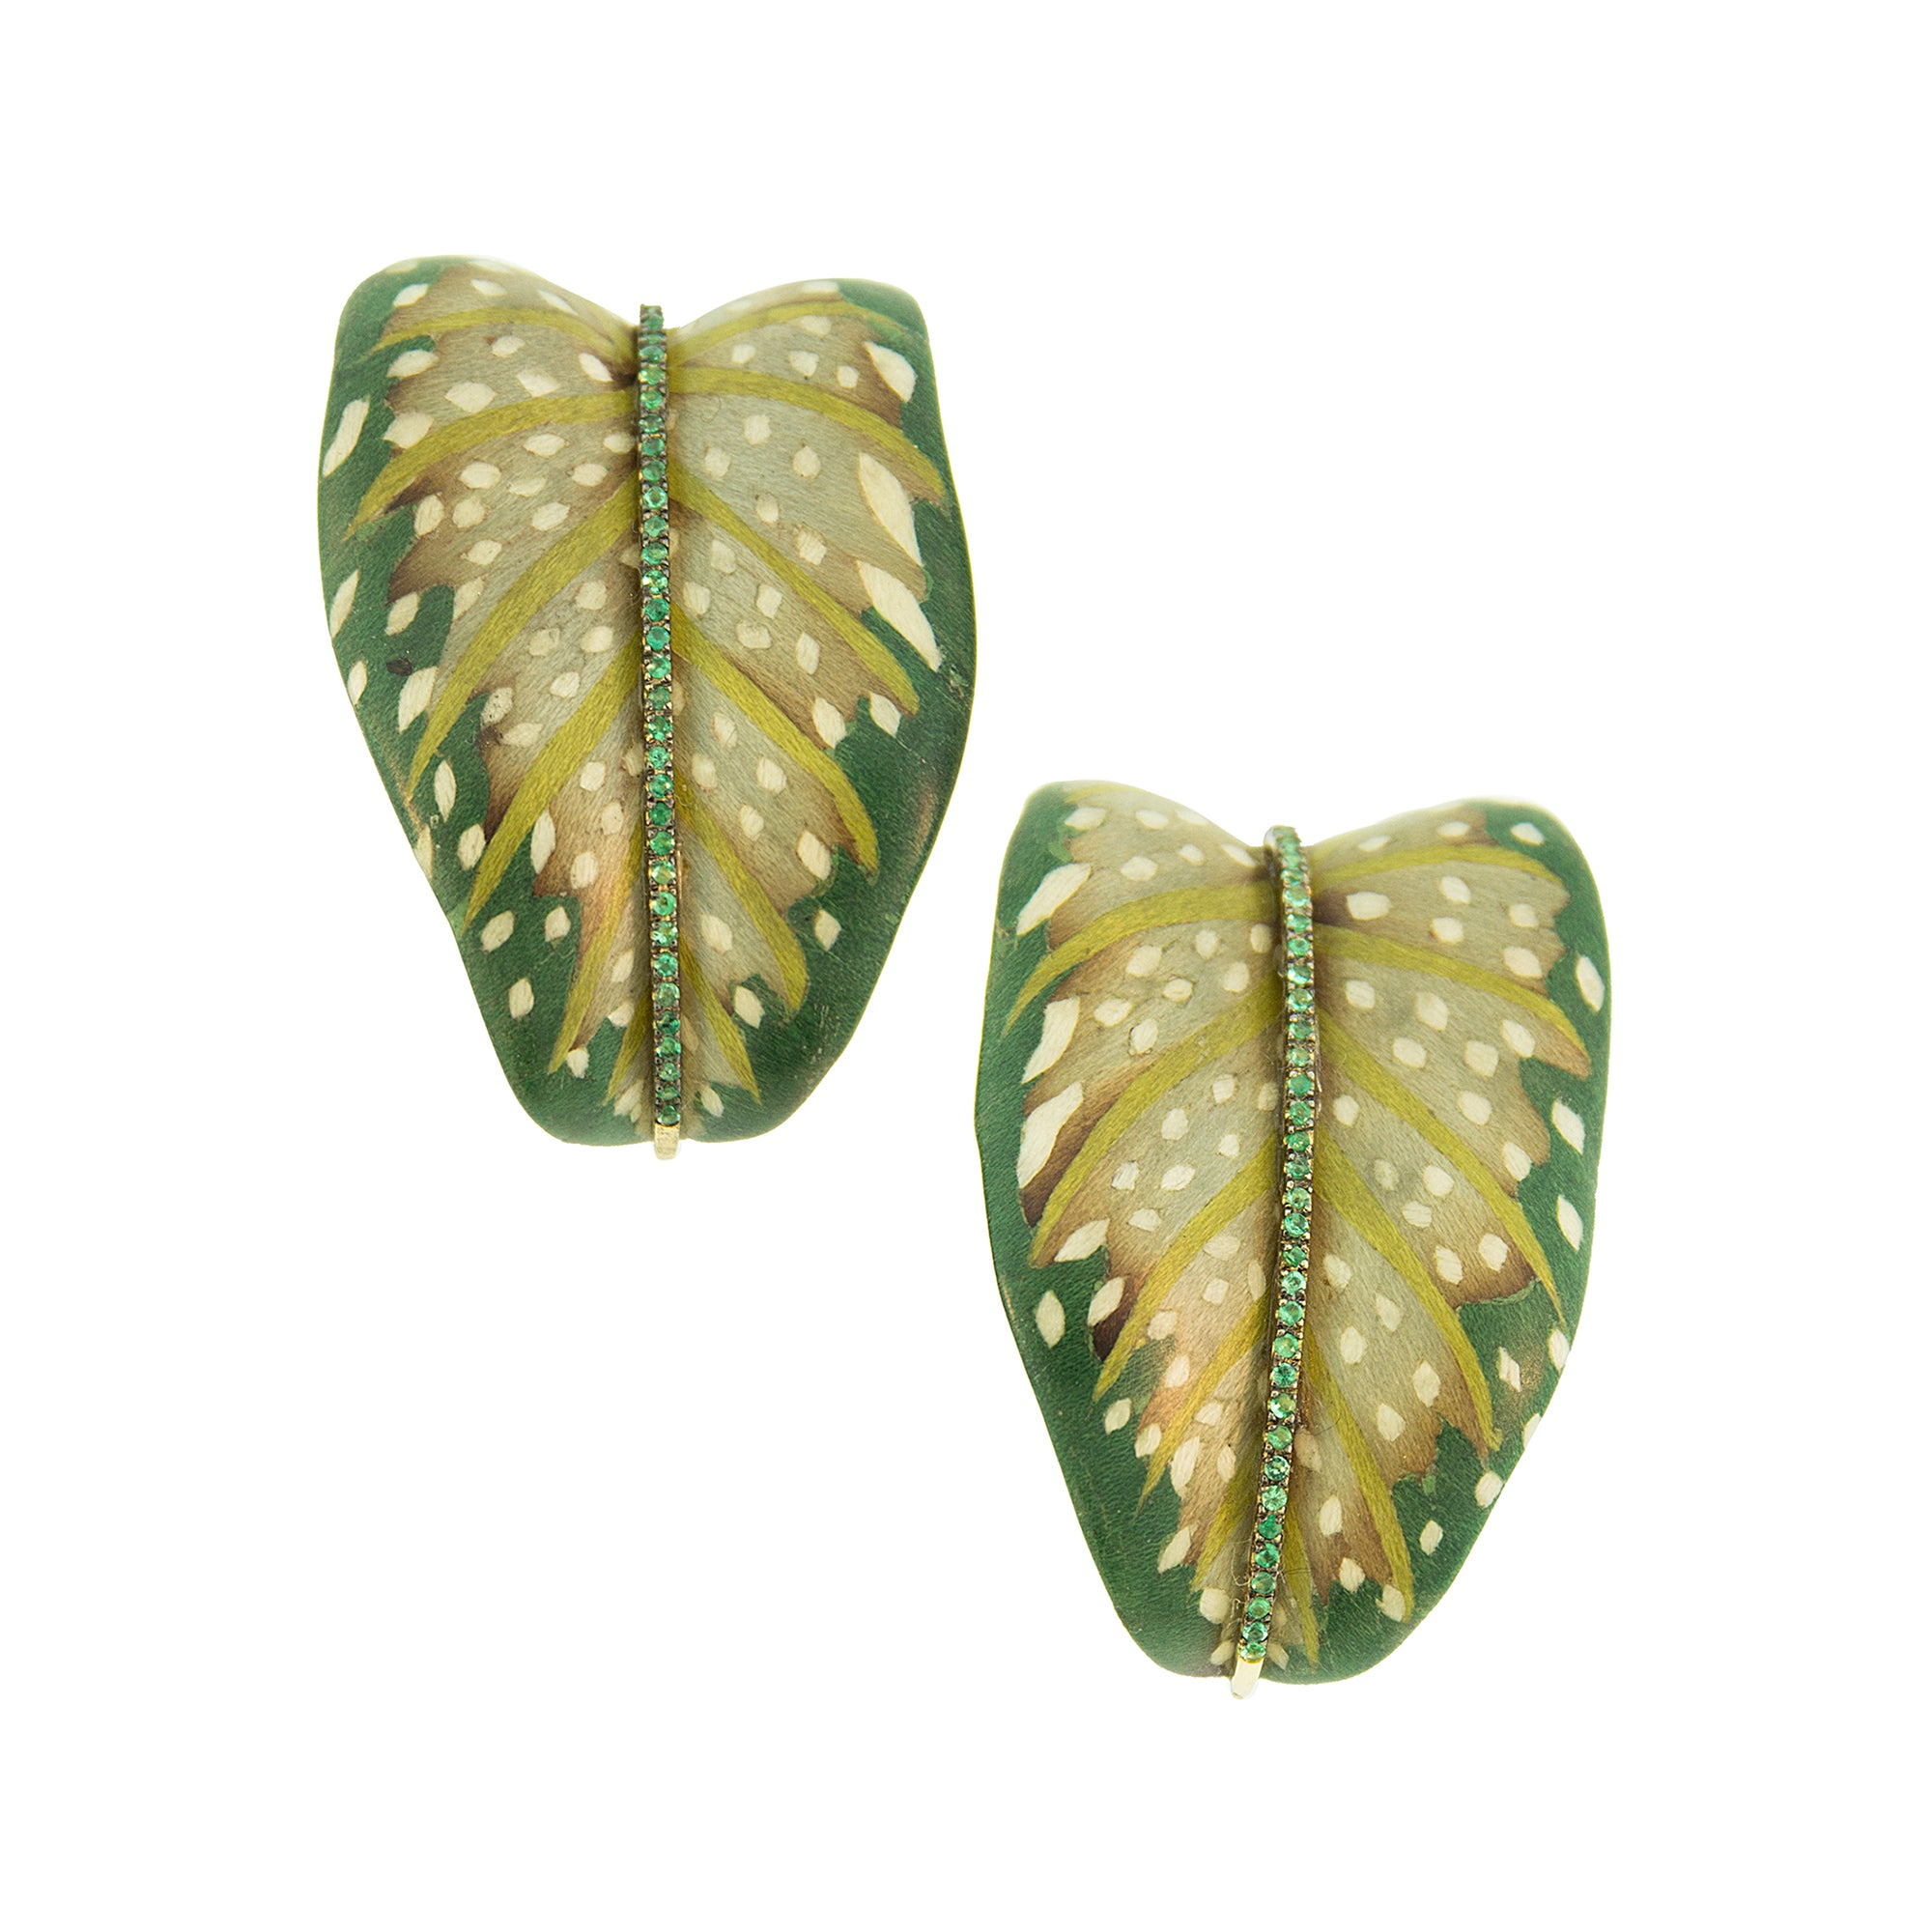 Marquetry Green Leaf Earrings - Silvia Furmanovich - Earrings | Broken English Jewelry